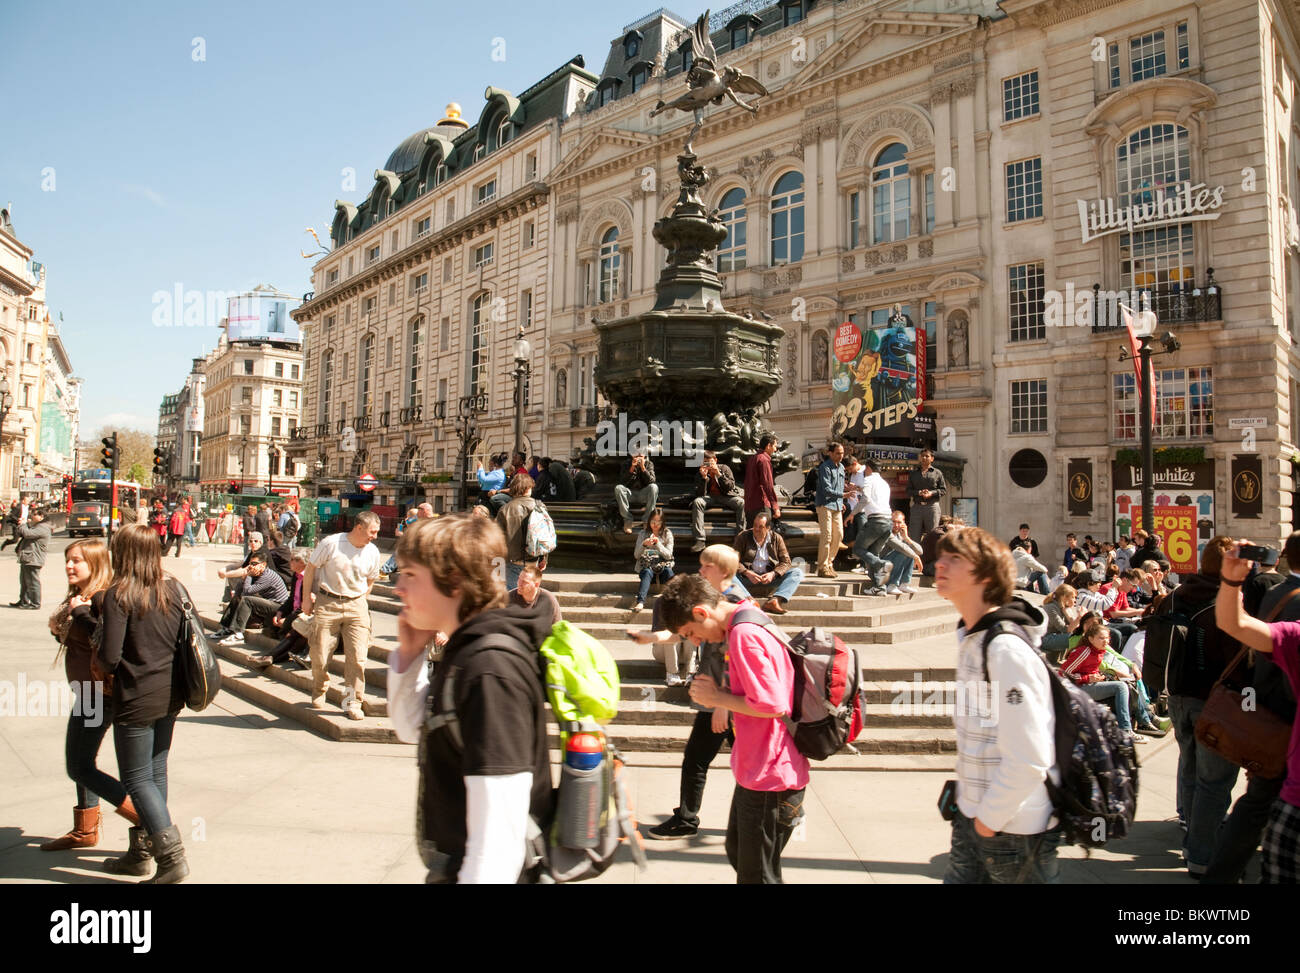 Teenage teenagers tourists around the statue of Eros, Piccadilly Circus, London UK - Stock Image